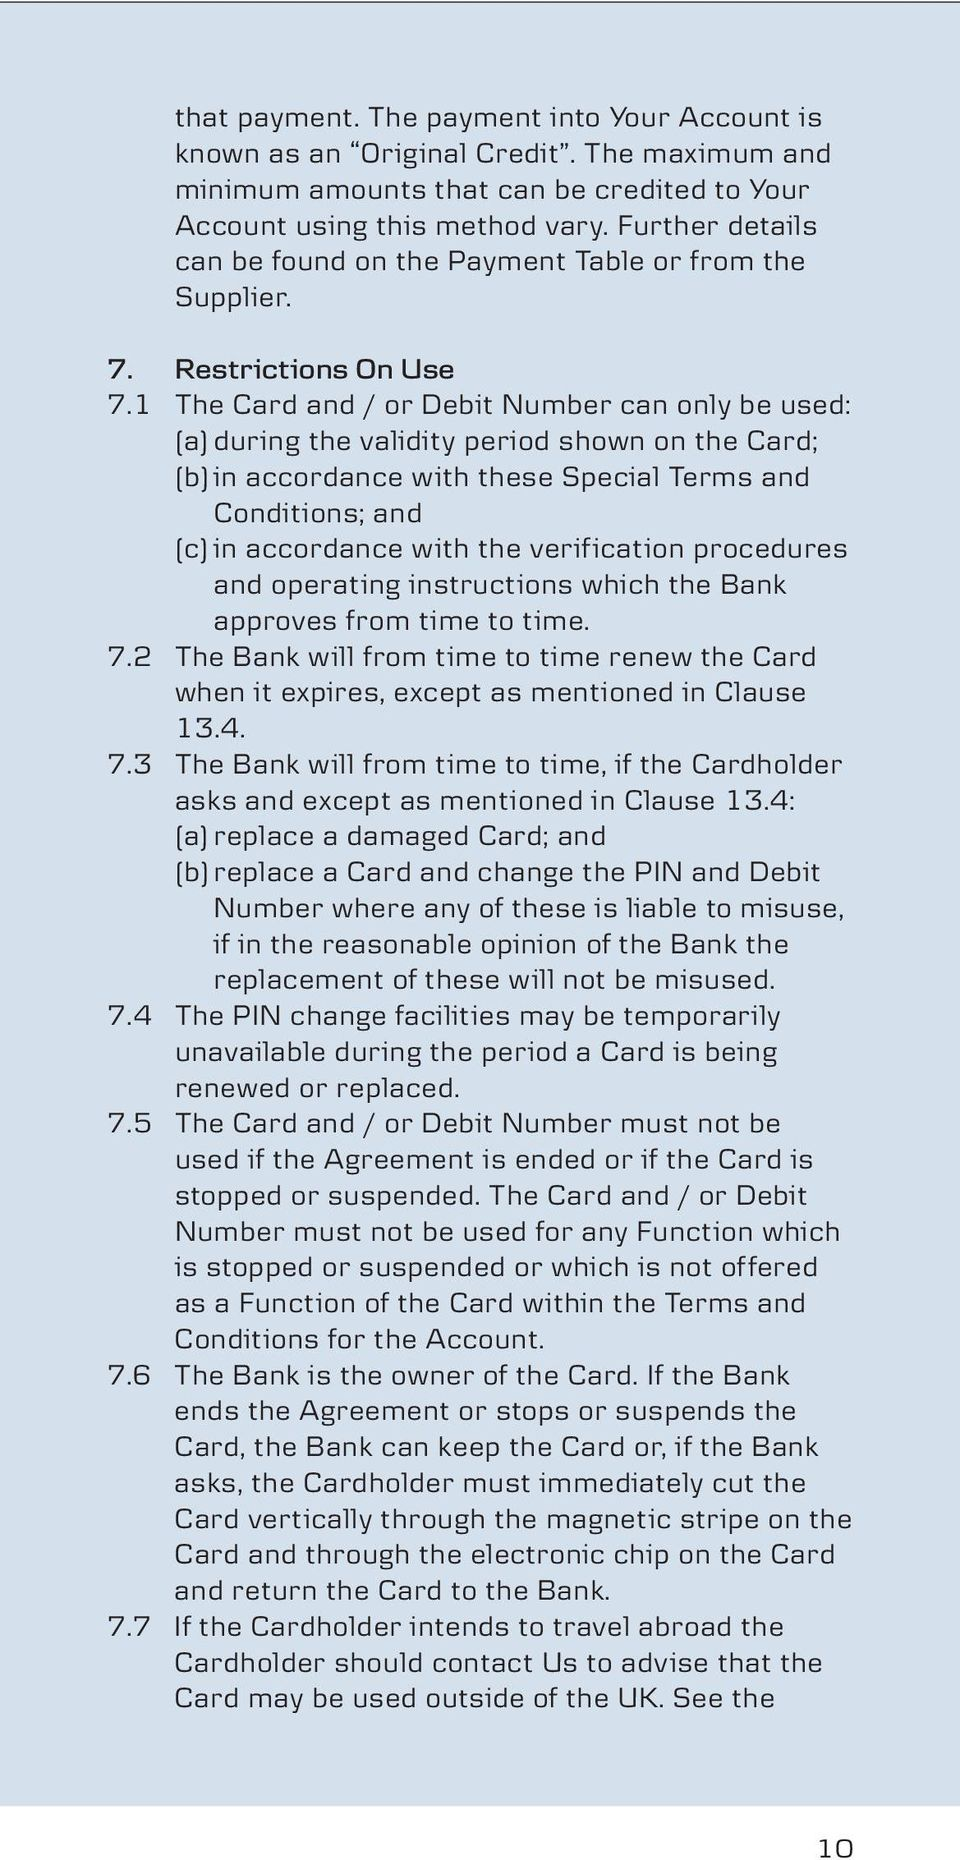 1 The Card and / or Debit Number can only be used: (a) during the validity period shown on the Card; (b) in accordance with these Special Terms and Conditions; and (c) in accordance with the